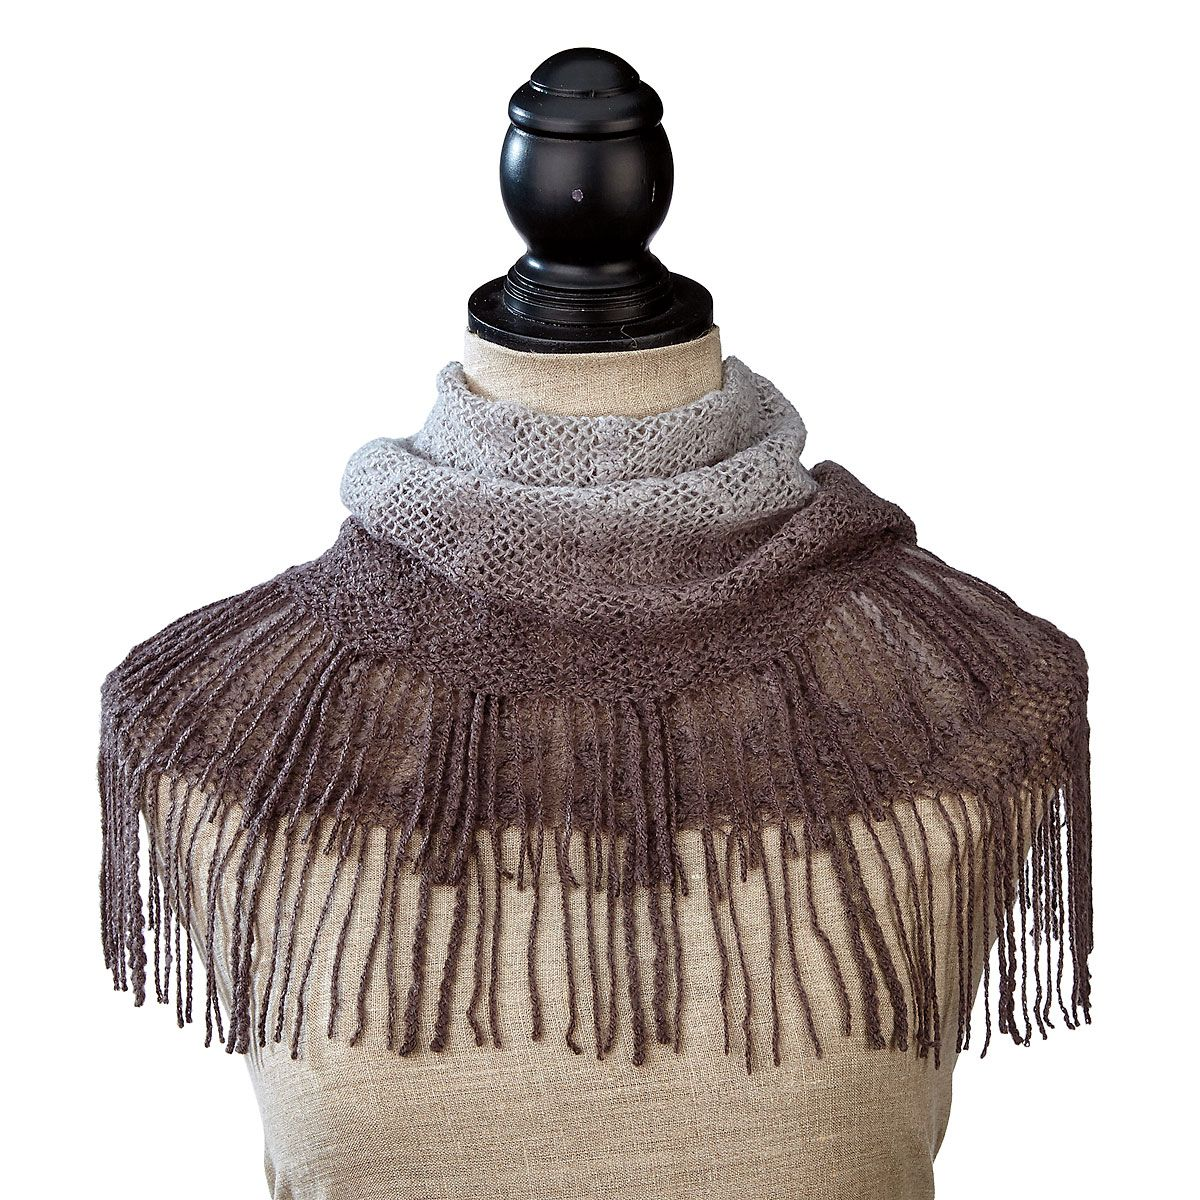 Infinity Scarf - Charcoal Grey Ombre